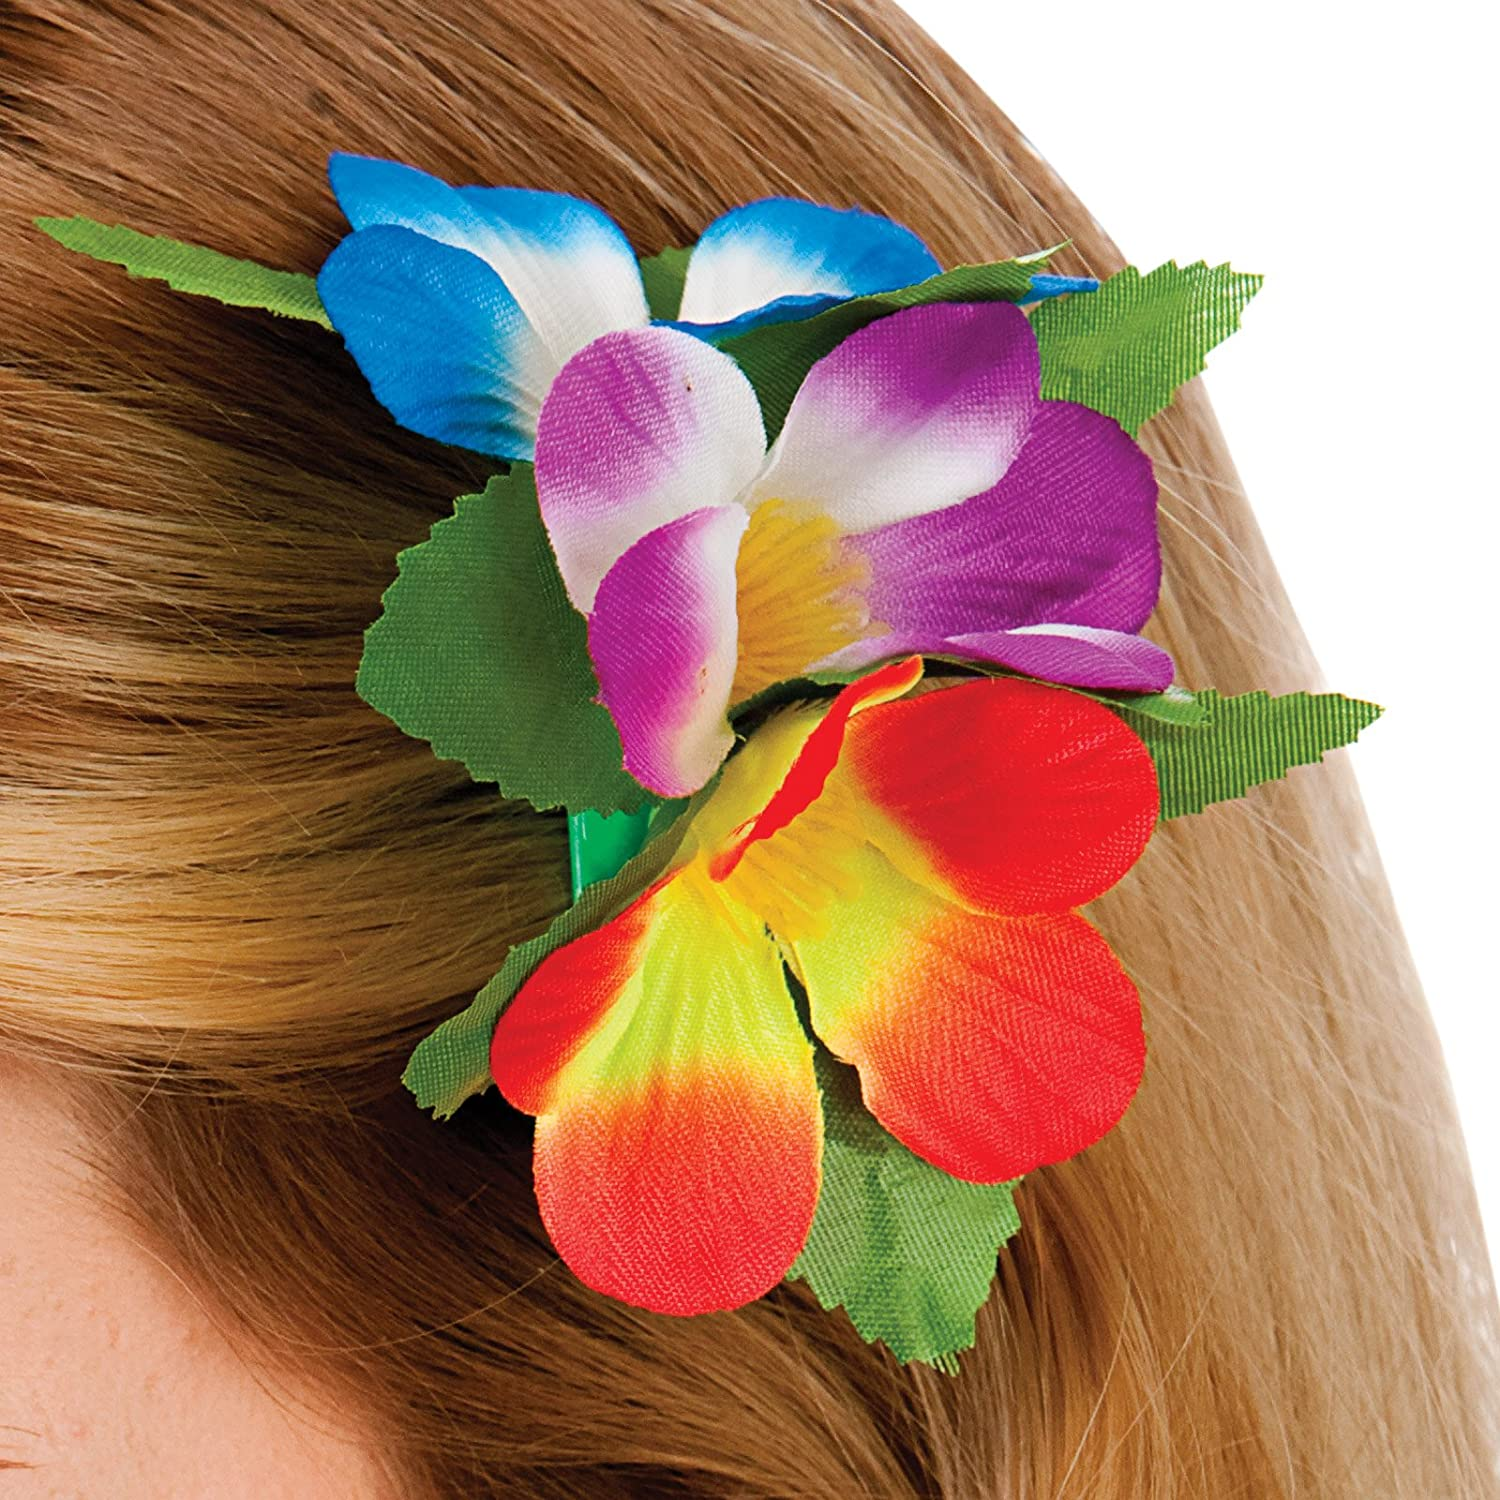 Hawaii Flower Hair Clip Multi Outfit Accessory For Tropical Fancy